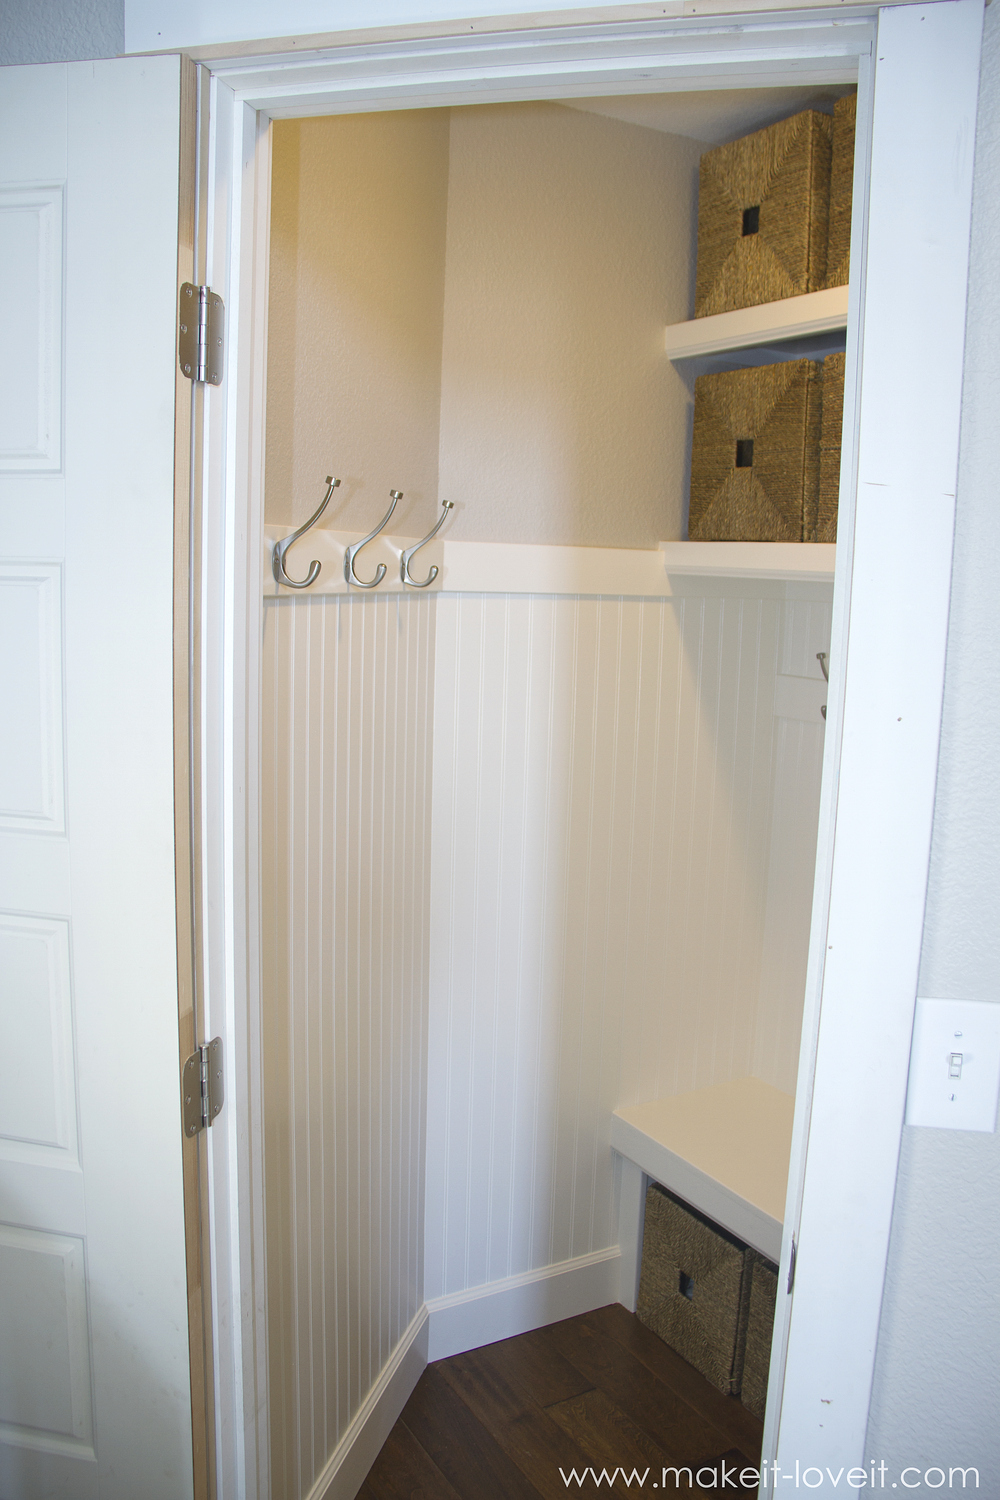 Comfortable Baskets Turn A Coat Closet Into A Hooks Turn A Coat Make It What Is A Mudroom Love It What Is A Mud Room Used houzz 01 What Is A Mud Room